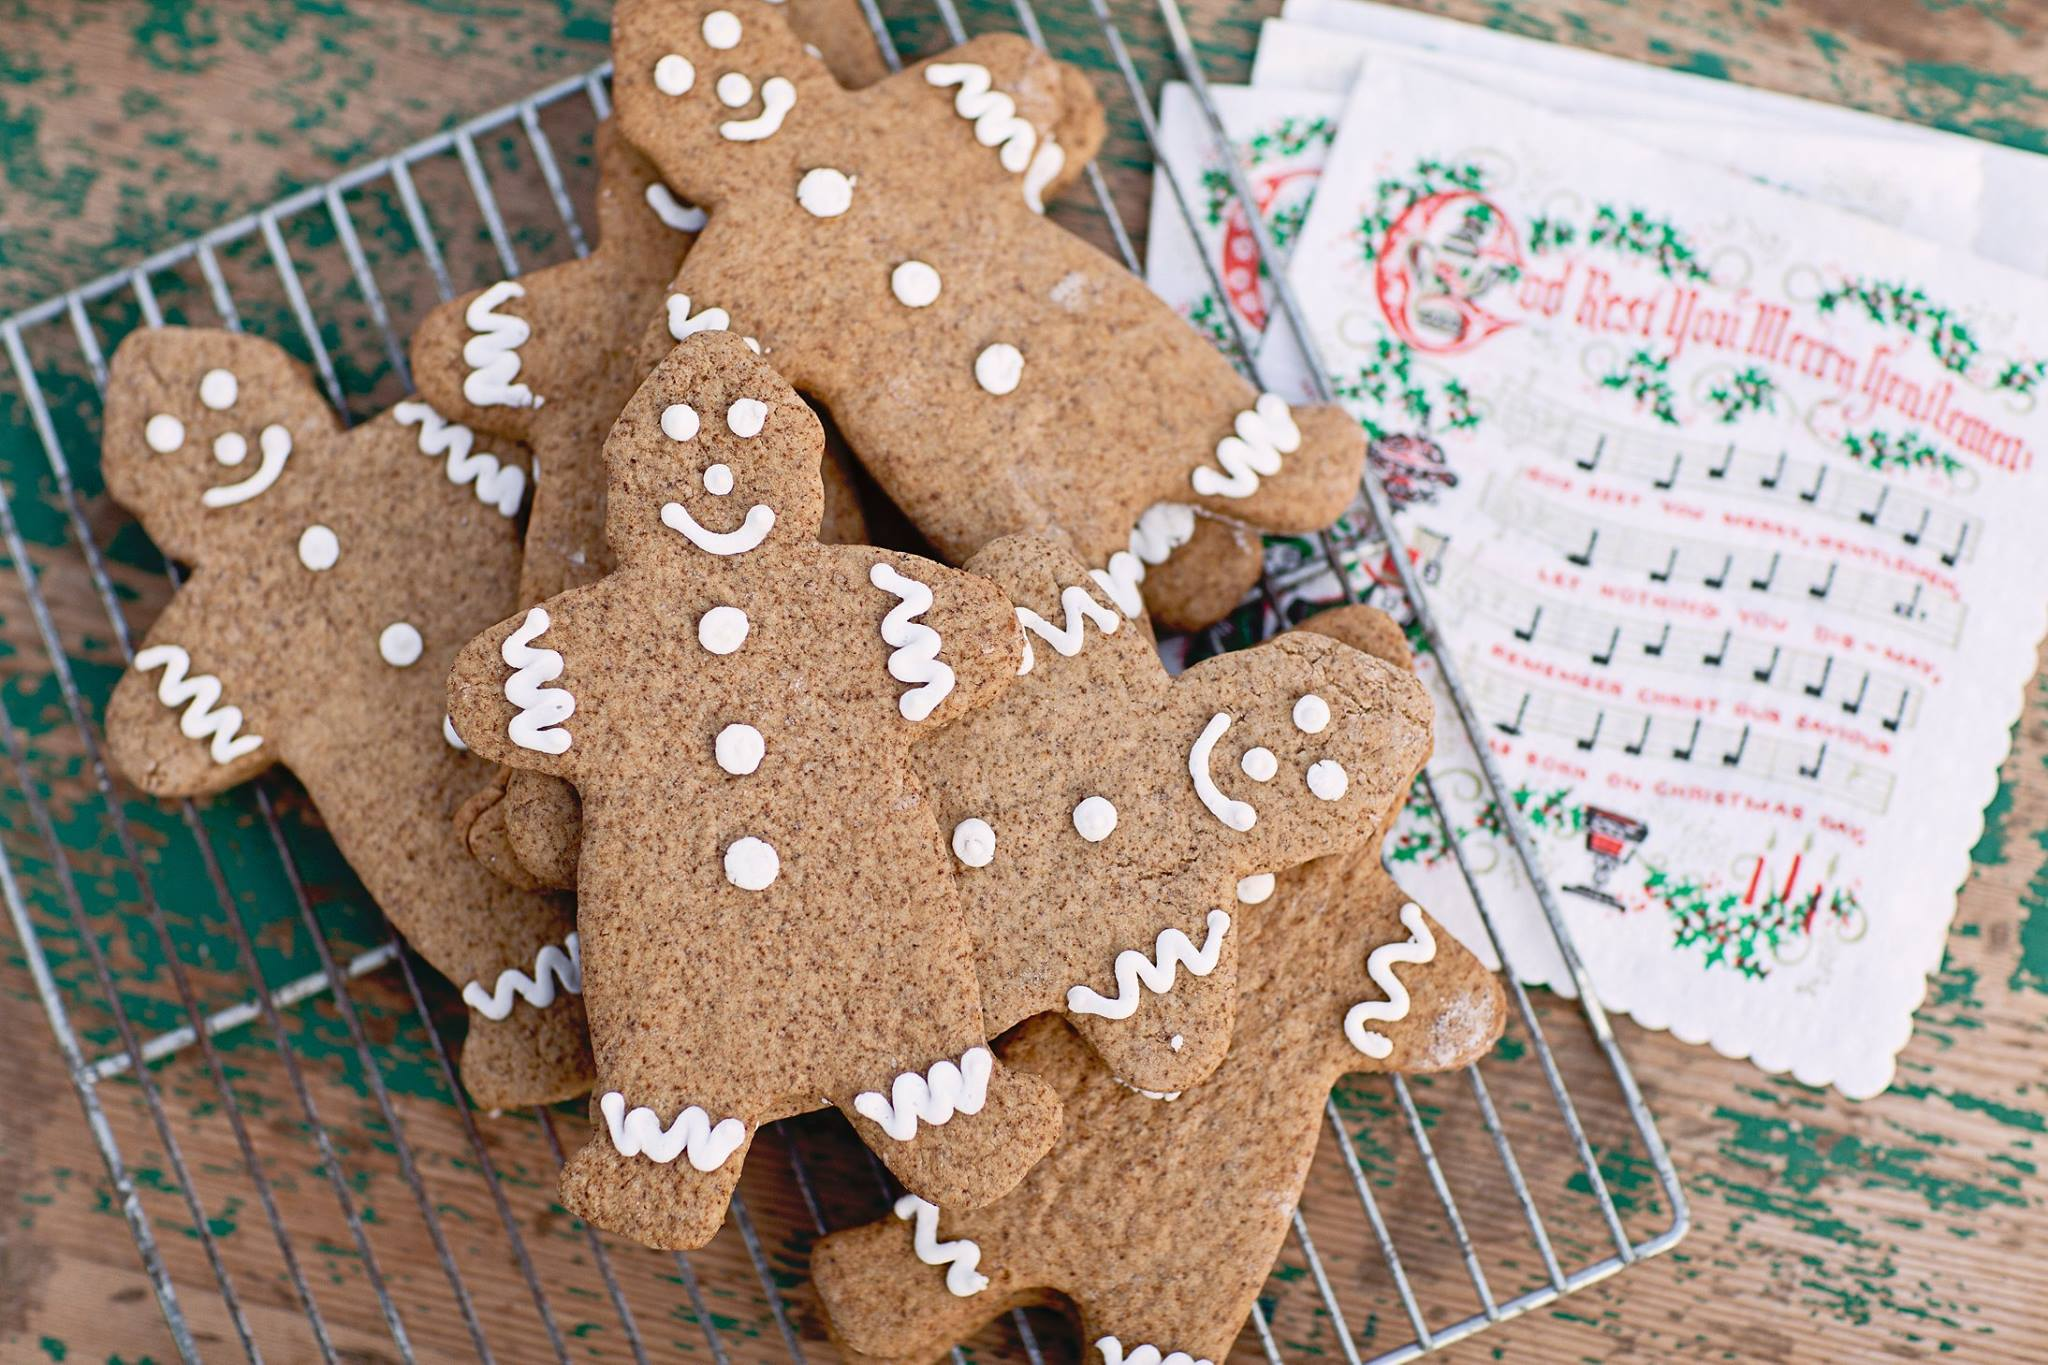 Easy Gingerbread Man Cookies | christmas cookie recipes | gingerbread recipes || JennyCookies.com #christmas #gingerbread #gingerbreadman #cookies #jennycookies